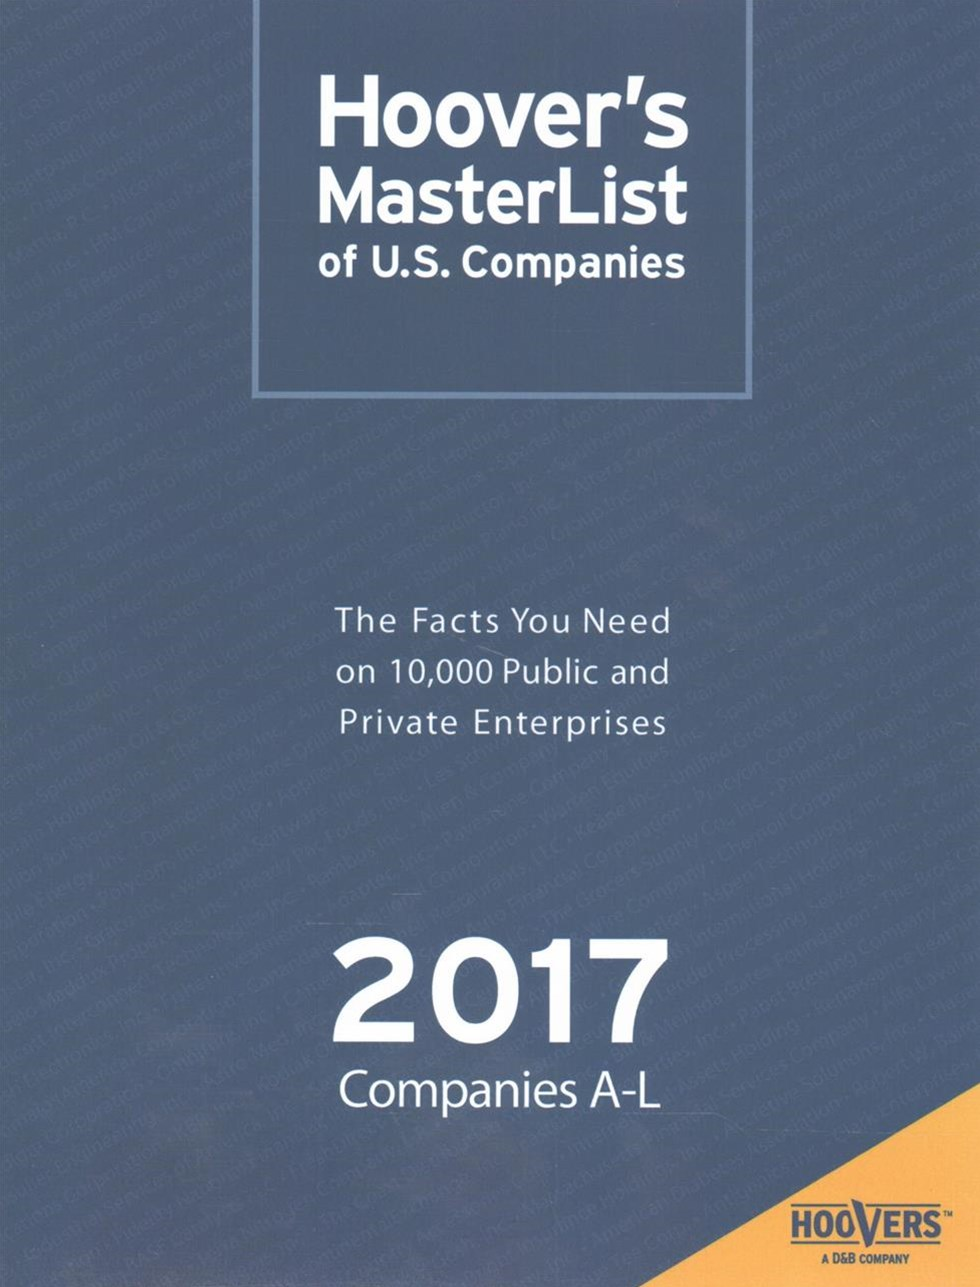 Hoover's Master List of U.S. Companies 2017